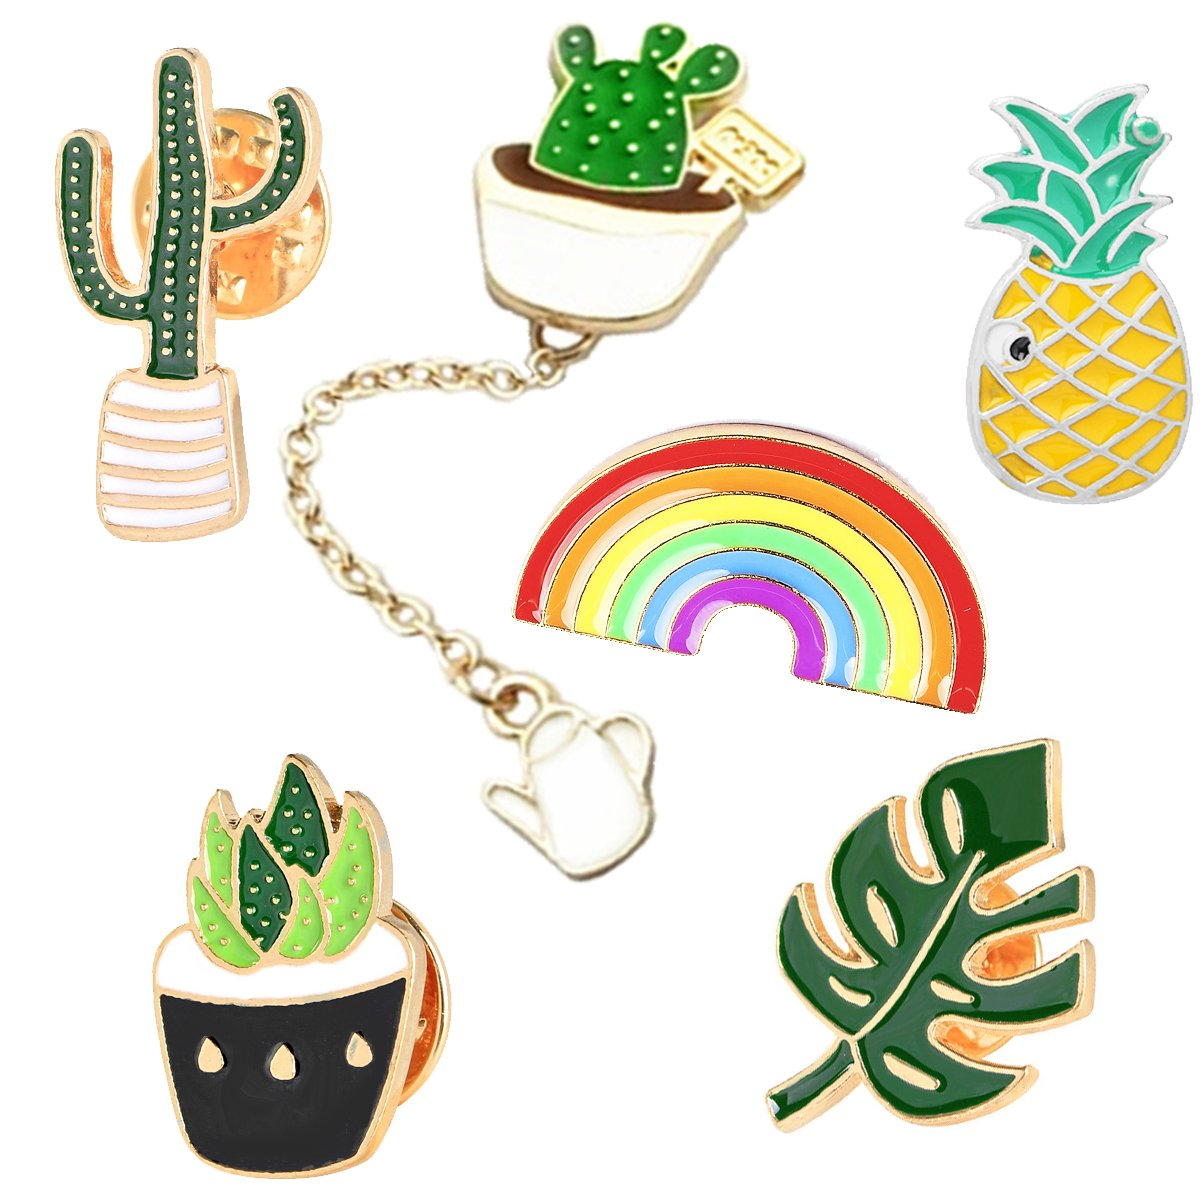 Guass Cute Plant Enamel Pin Set - Cactus Pins Succulent Pins Rainbow Pin Pineapple Pins 6pcs Cute Brooch Pin Set for Clothes Bags Backpacks Lapel Pin Set